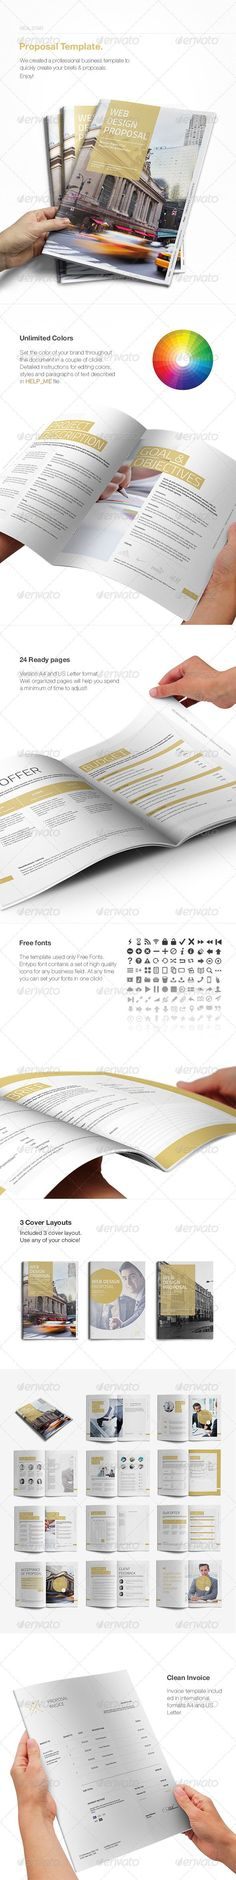 Commercial Proposal Format Fair Commercial Proposal Template #09  Commercial Proposal  Pinterest .